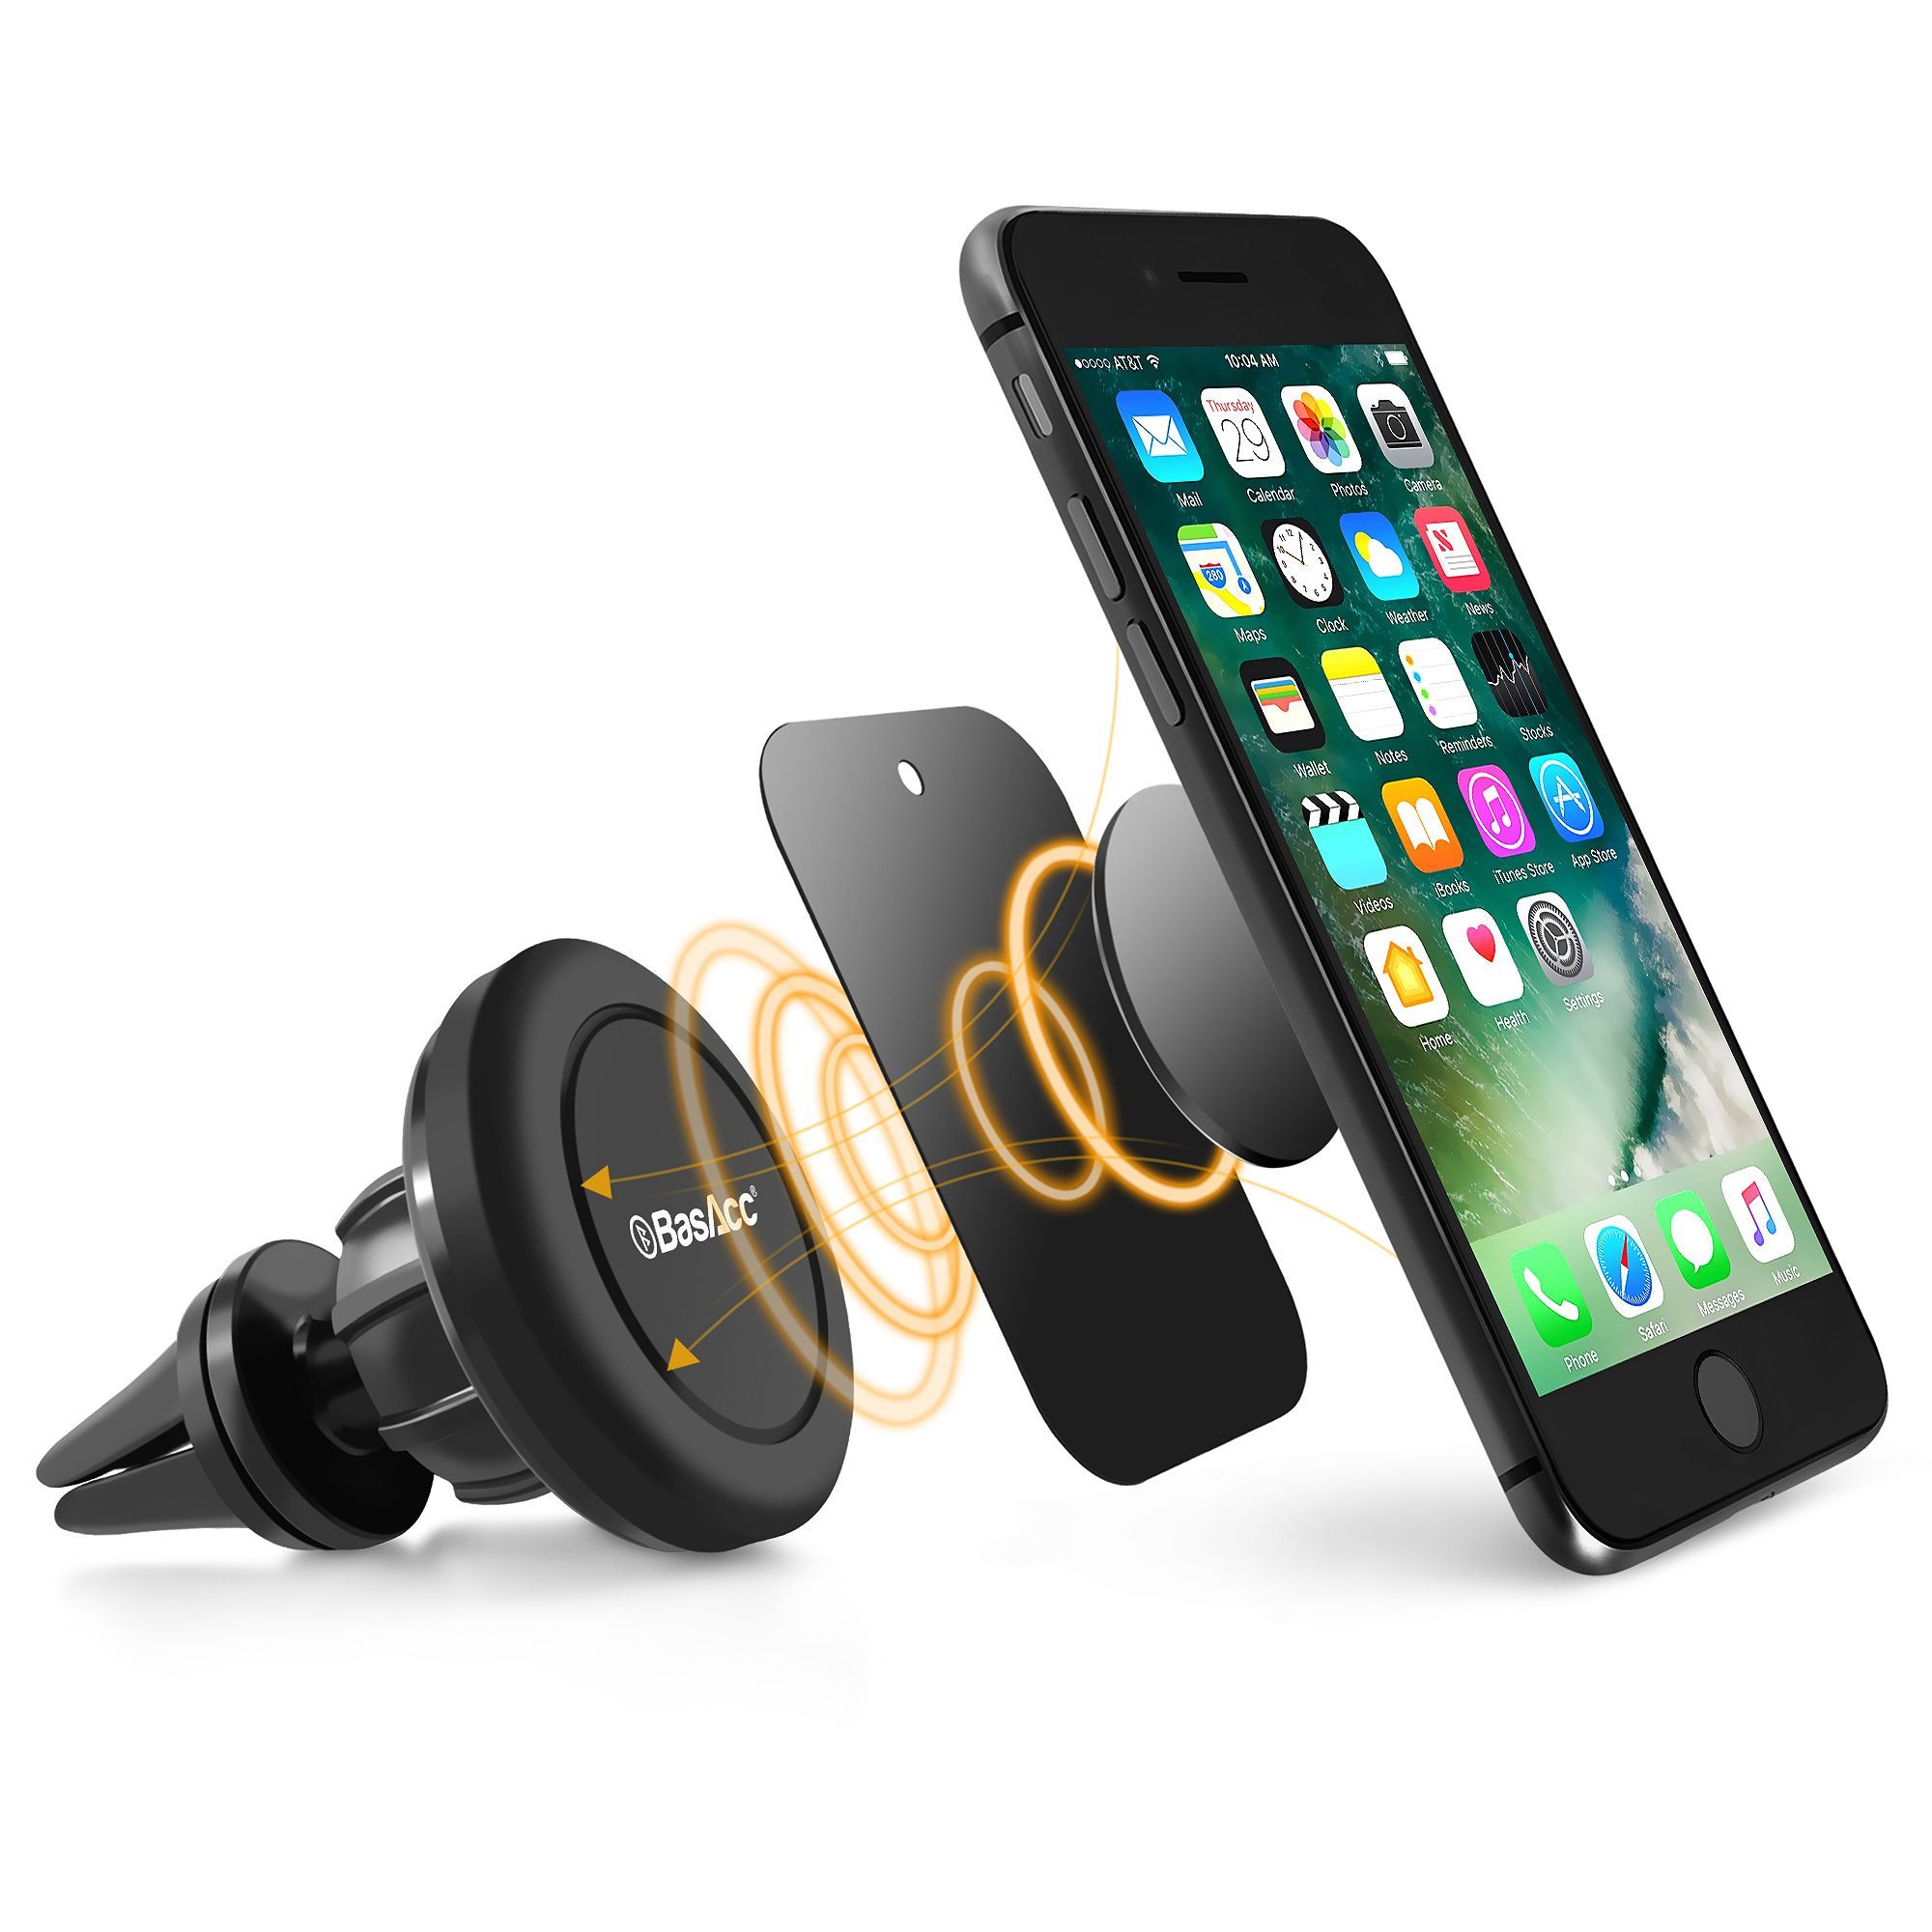 BasAcc Universal Magnetic Car Mount Phone Holder Air Vent For iPhone XS Max XR XS X 8 7 6S Plus Smartphone Samsung Galaxy S9 S8 S7 S6 LG V30 G6 Stylo 4 Cell Phone 360 Degree Rotating Joint Ball